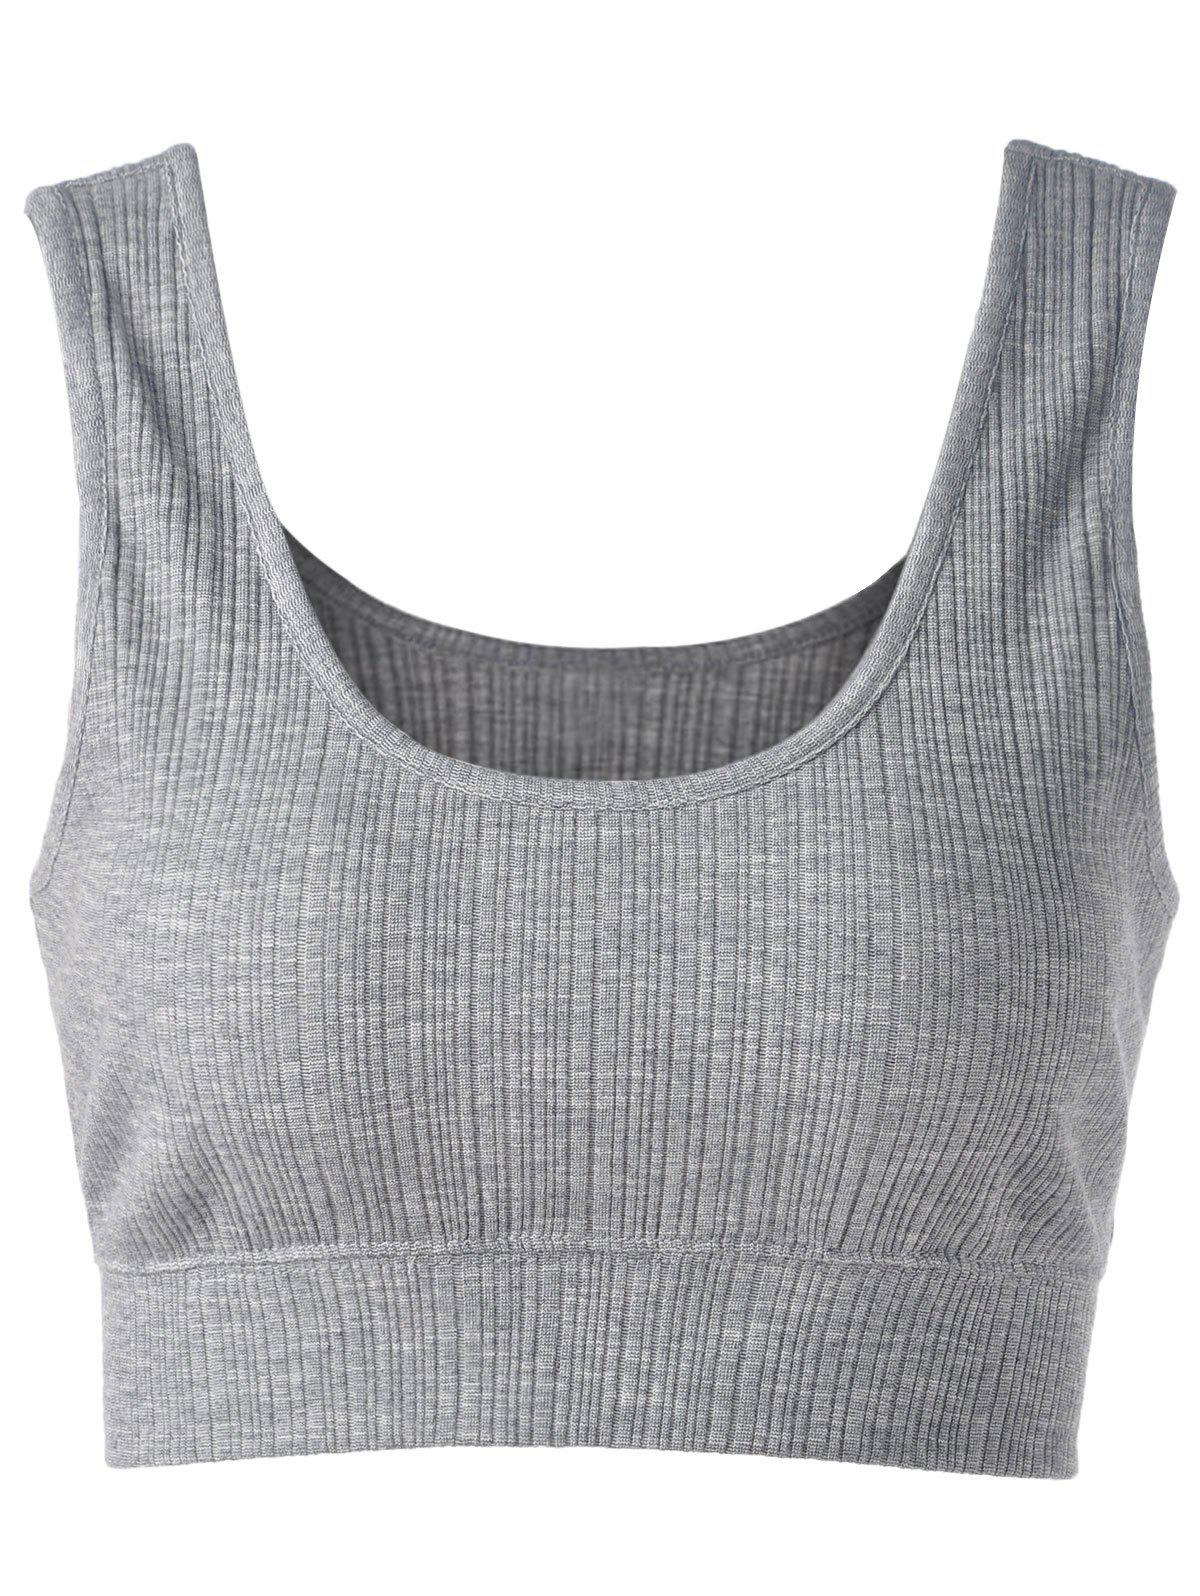 Contracted Brief Short Vest For Women - SMOKY GRAY S